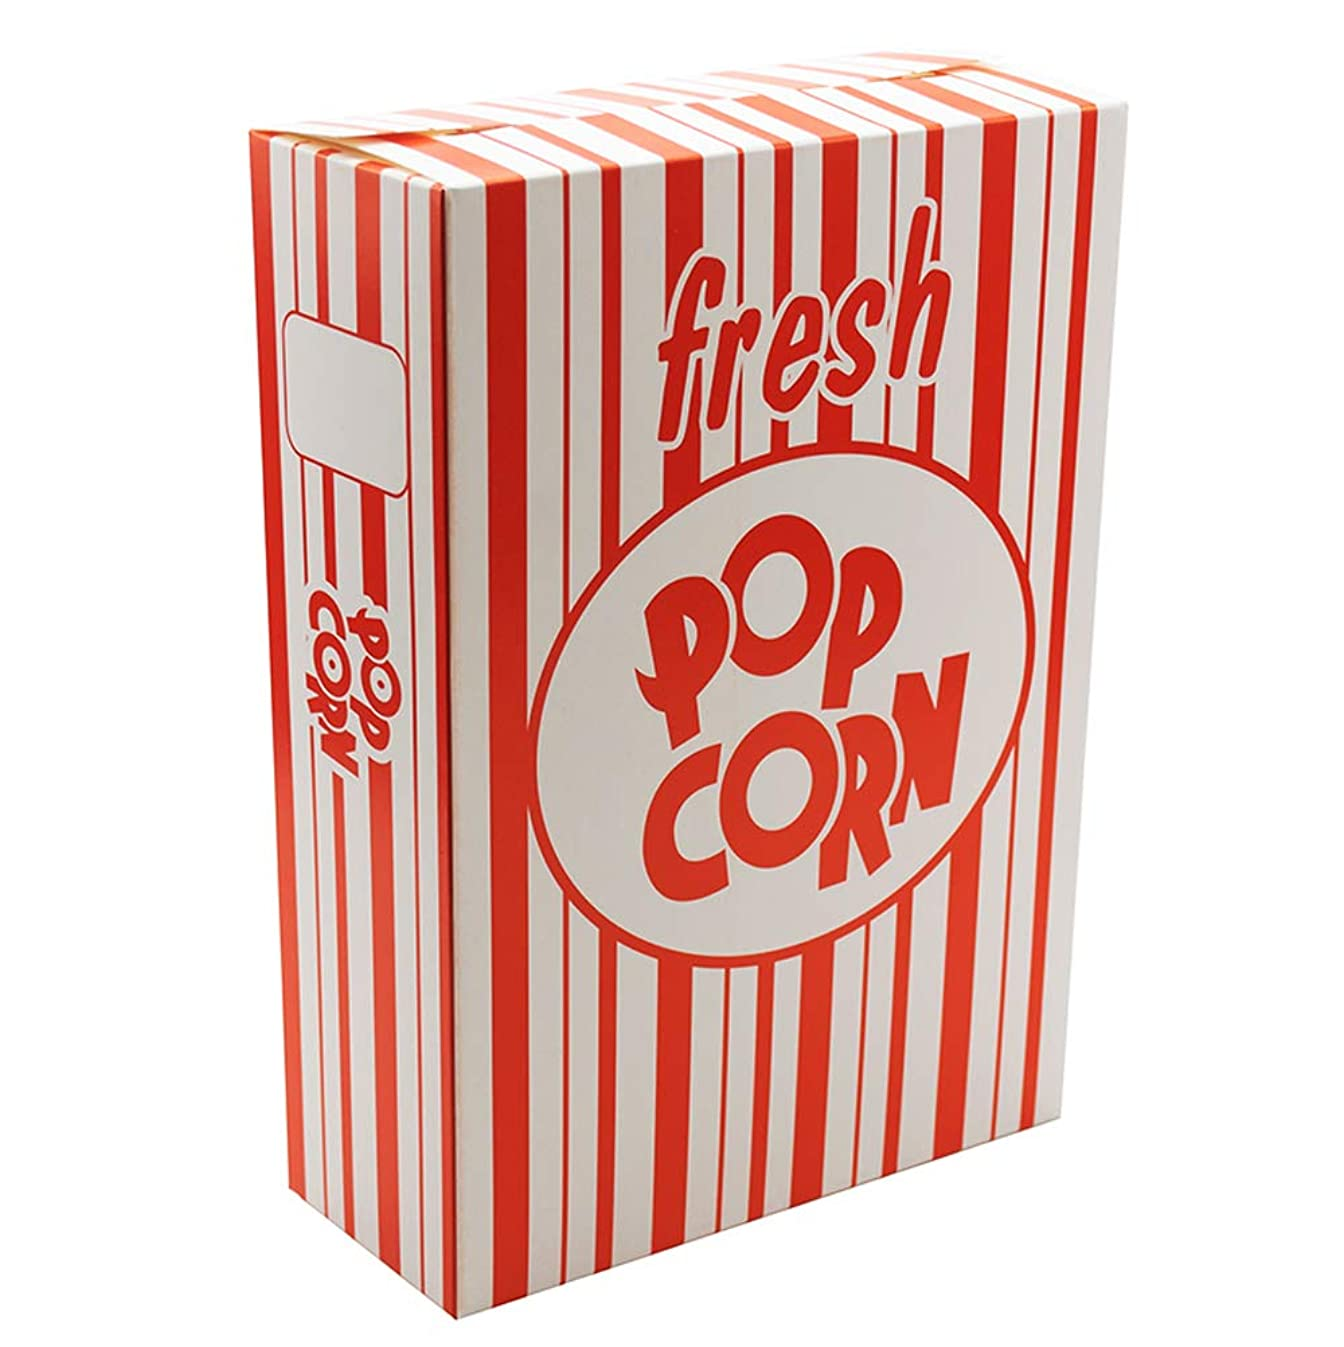 Fasmov Set of 100 - Close Top Movie Theater Popcorn Boxes, Carnival Circus Party Favors (Red and White Stripes)